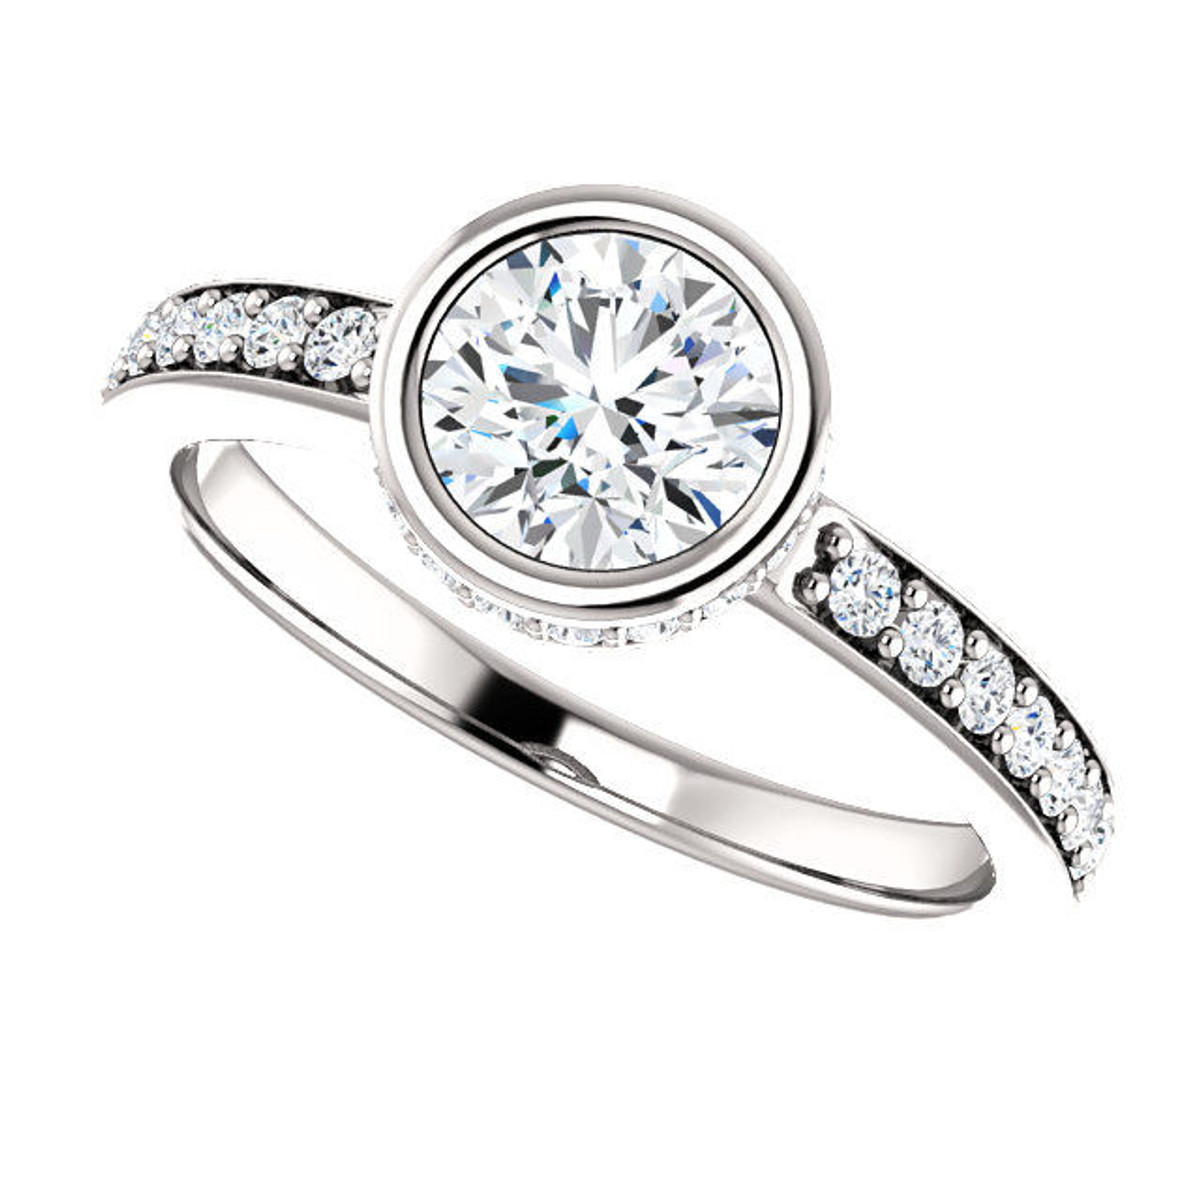 White Gold Diamond Accents Engagement Ring